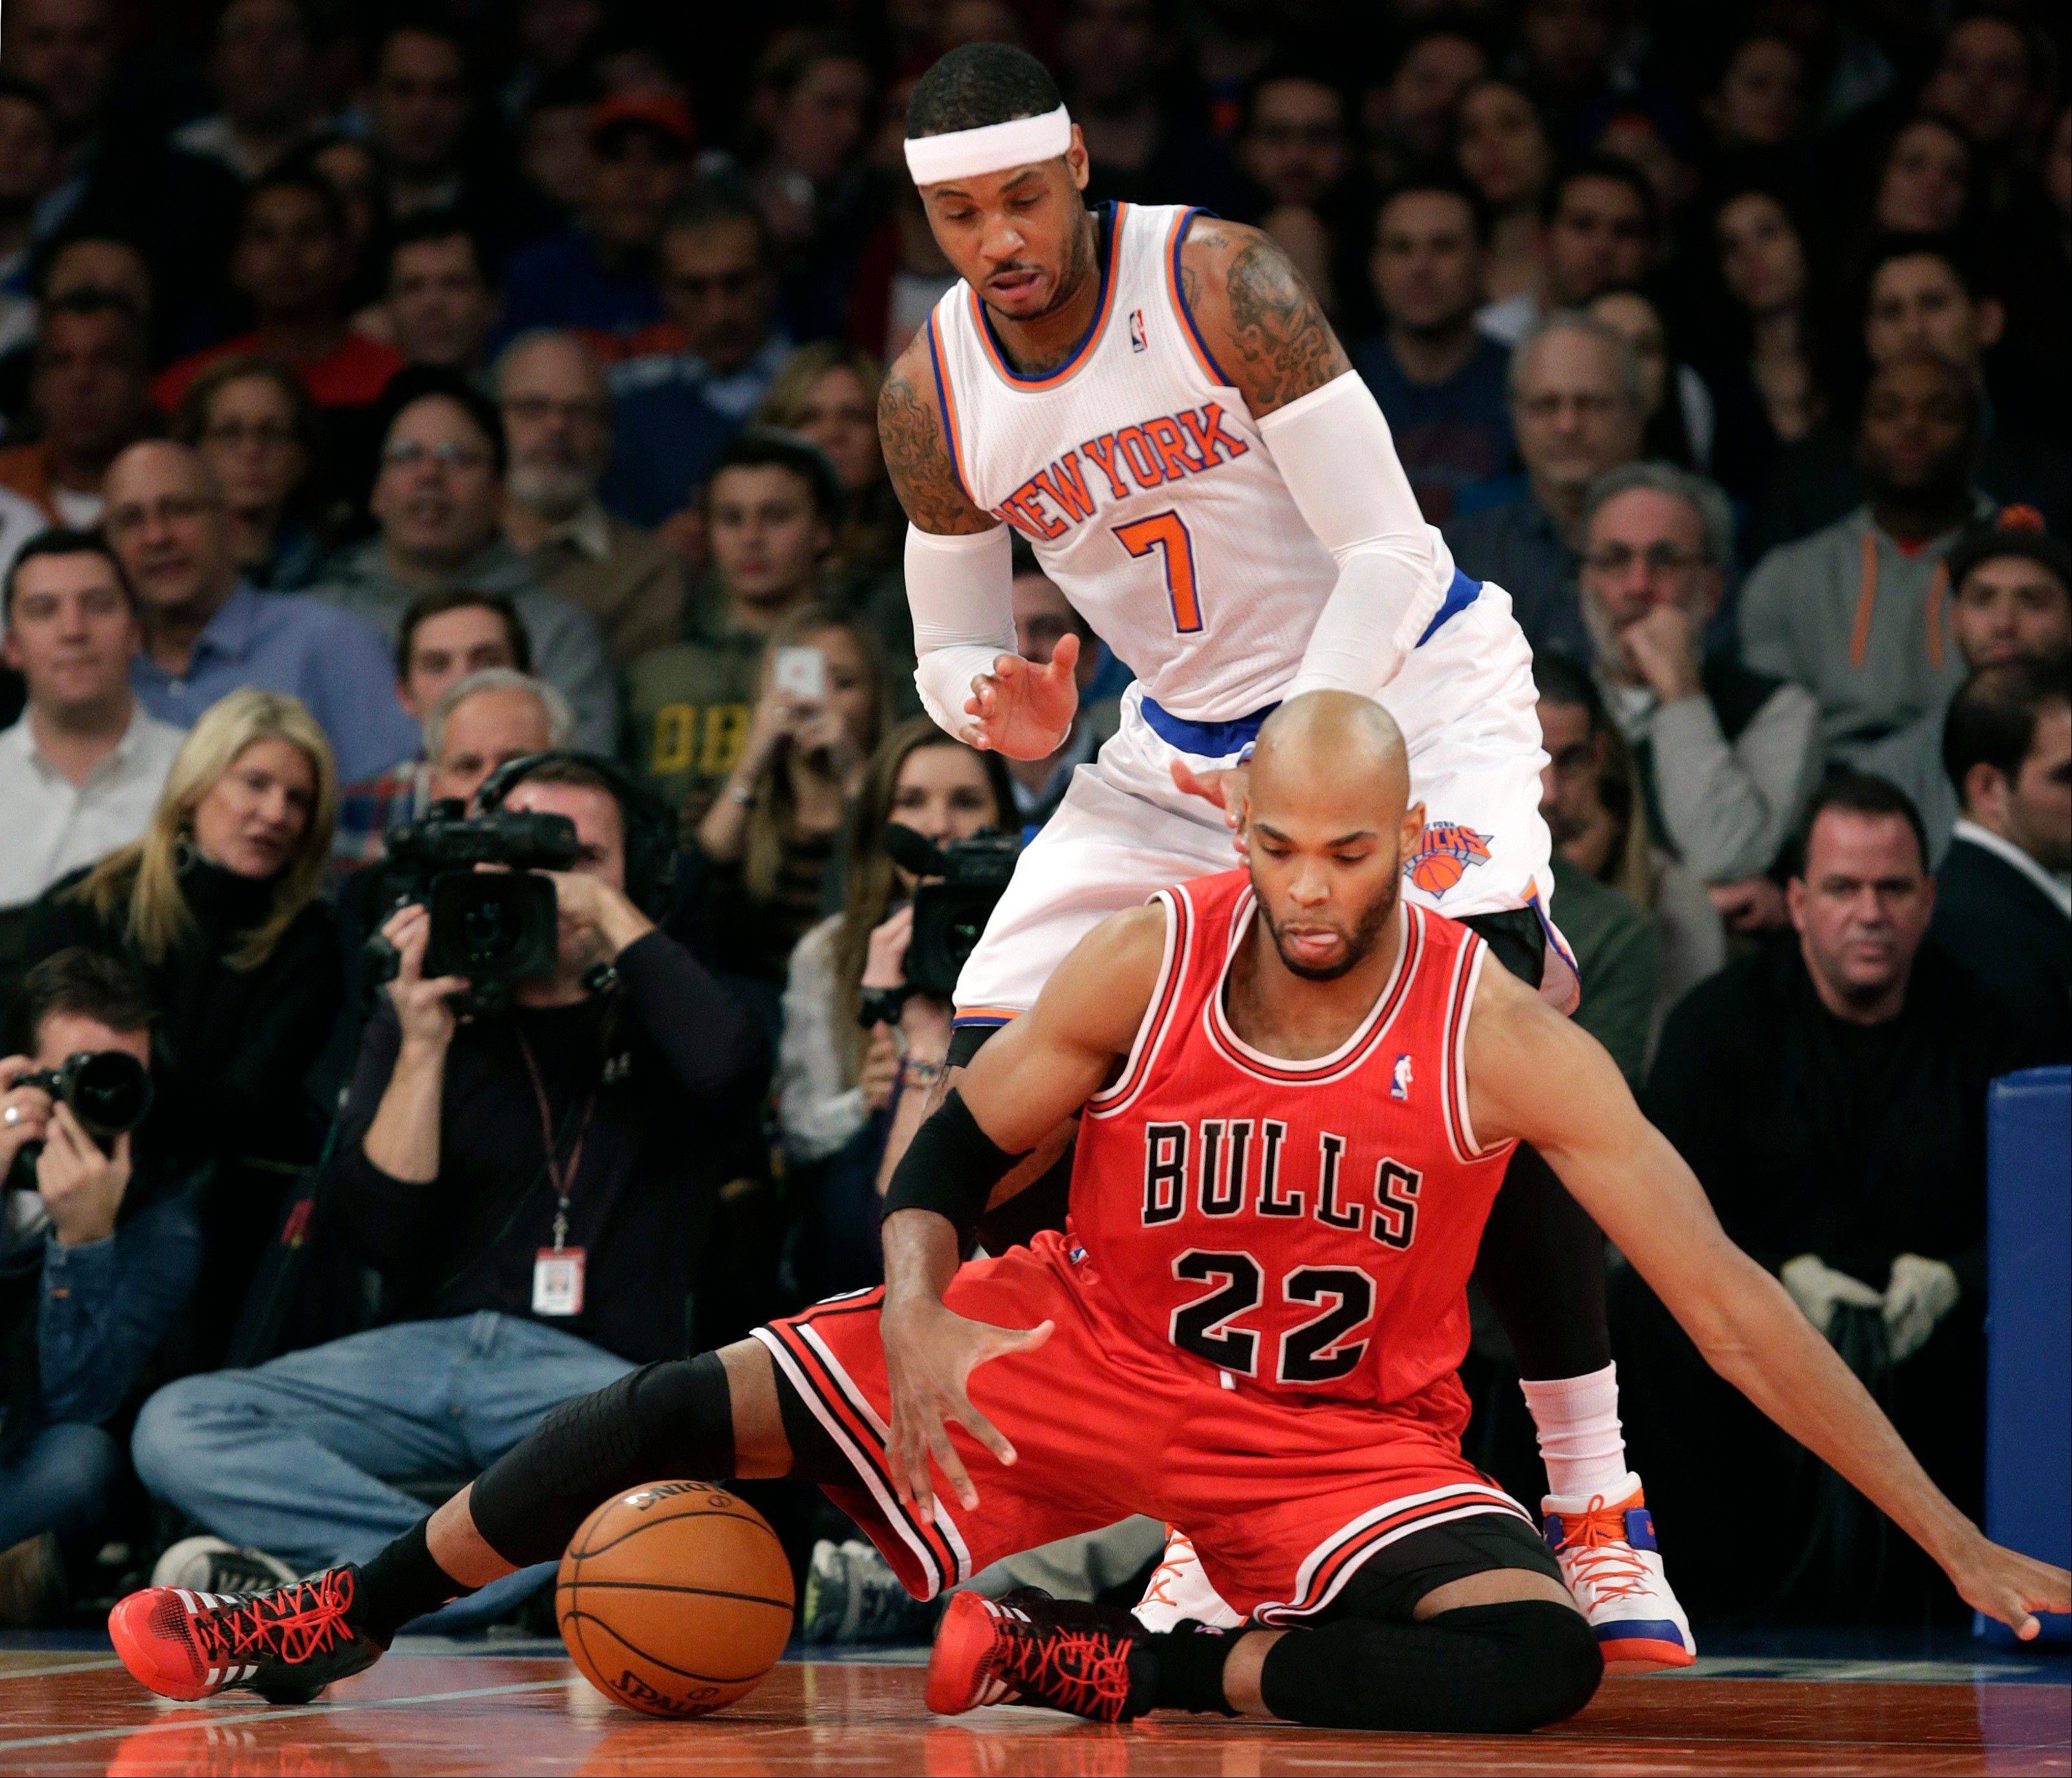 A win over the Knicks was there for the taking, but Taj Gibson and the Bulls couldn�t close the deal despite rallying from 23 points down at Madison Square Garden in New York.